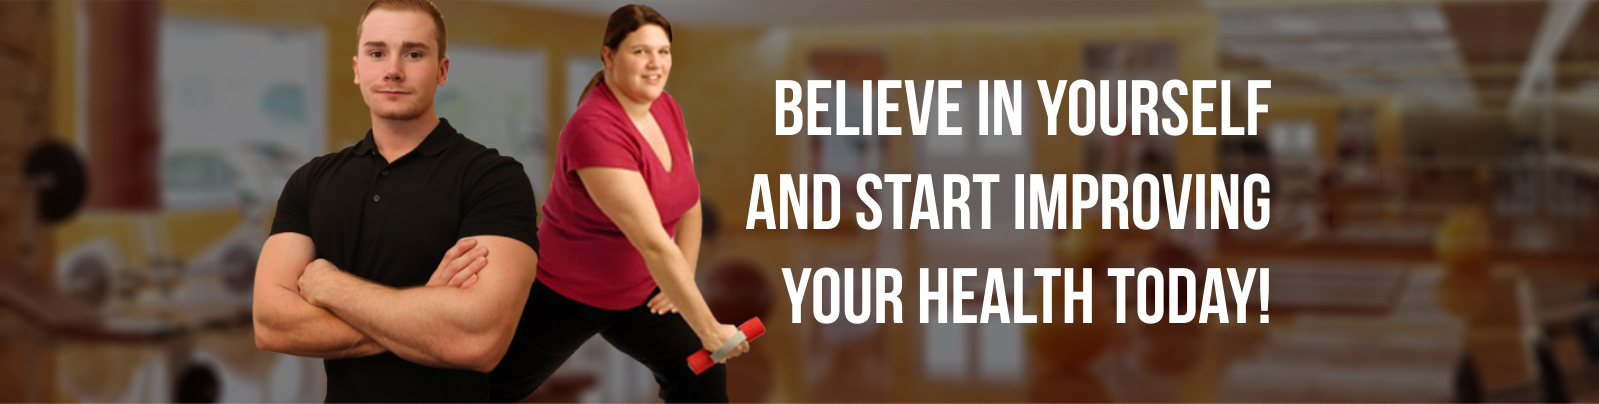 Believe in yourself and start improving your health today